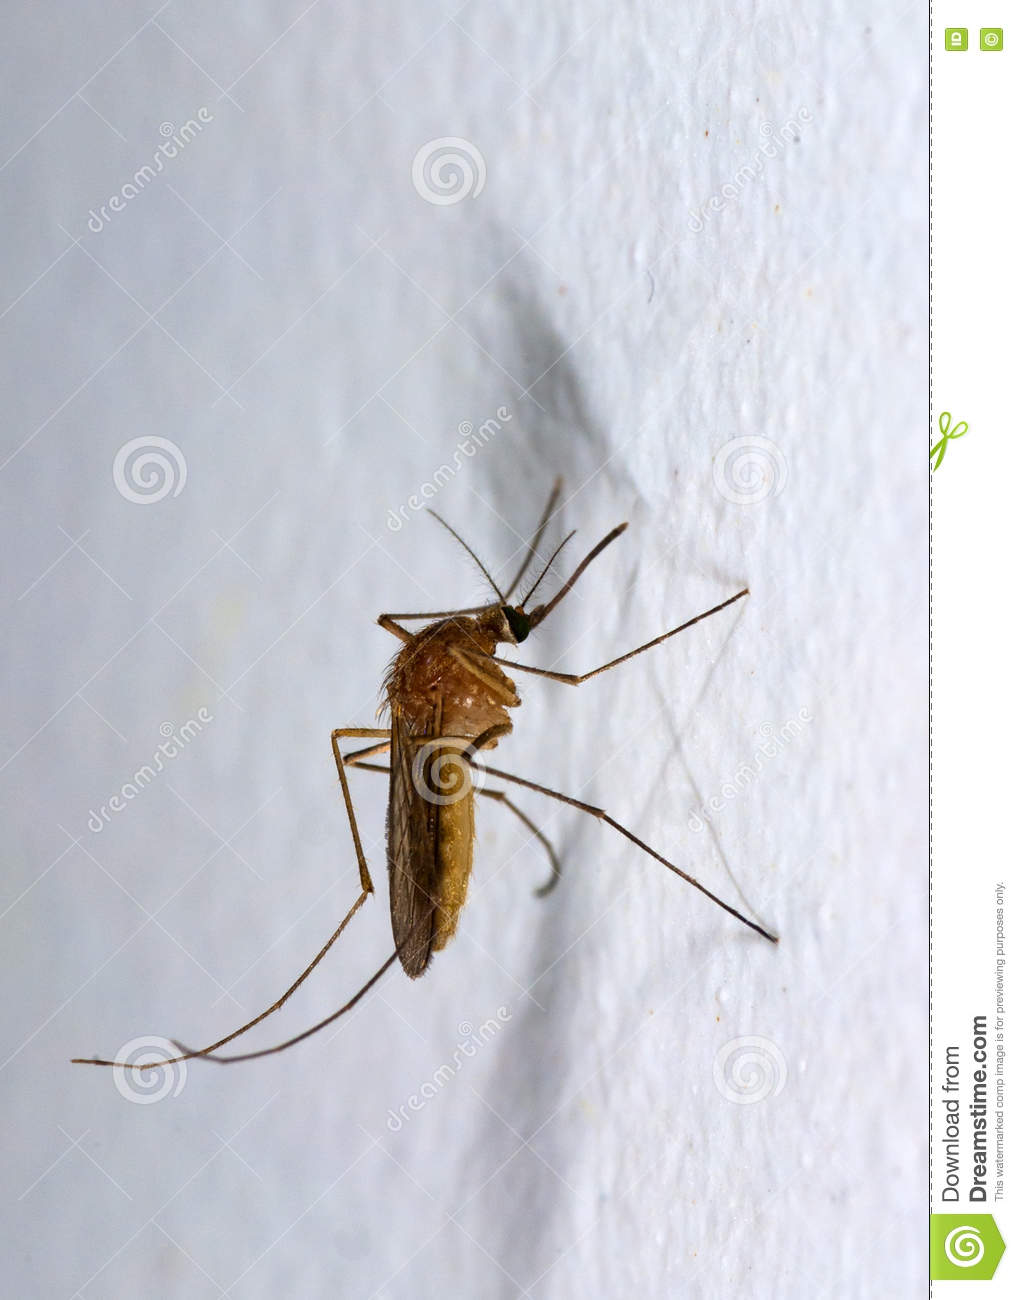 Mosquito on white wall